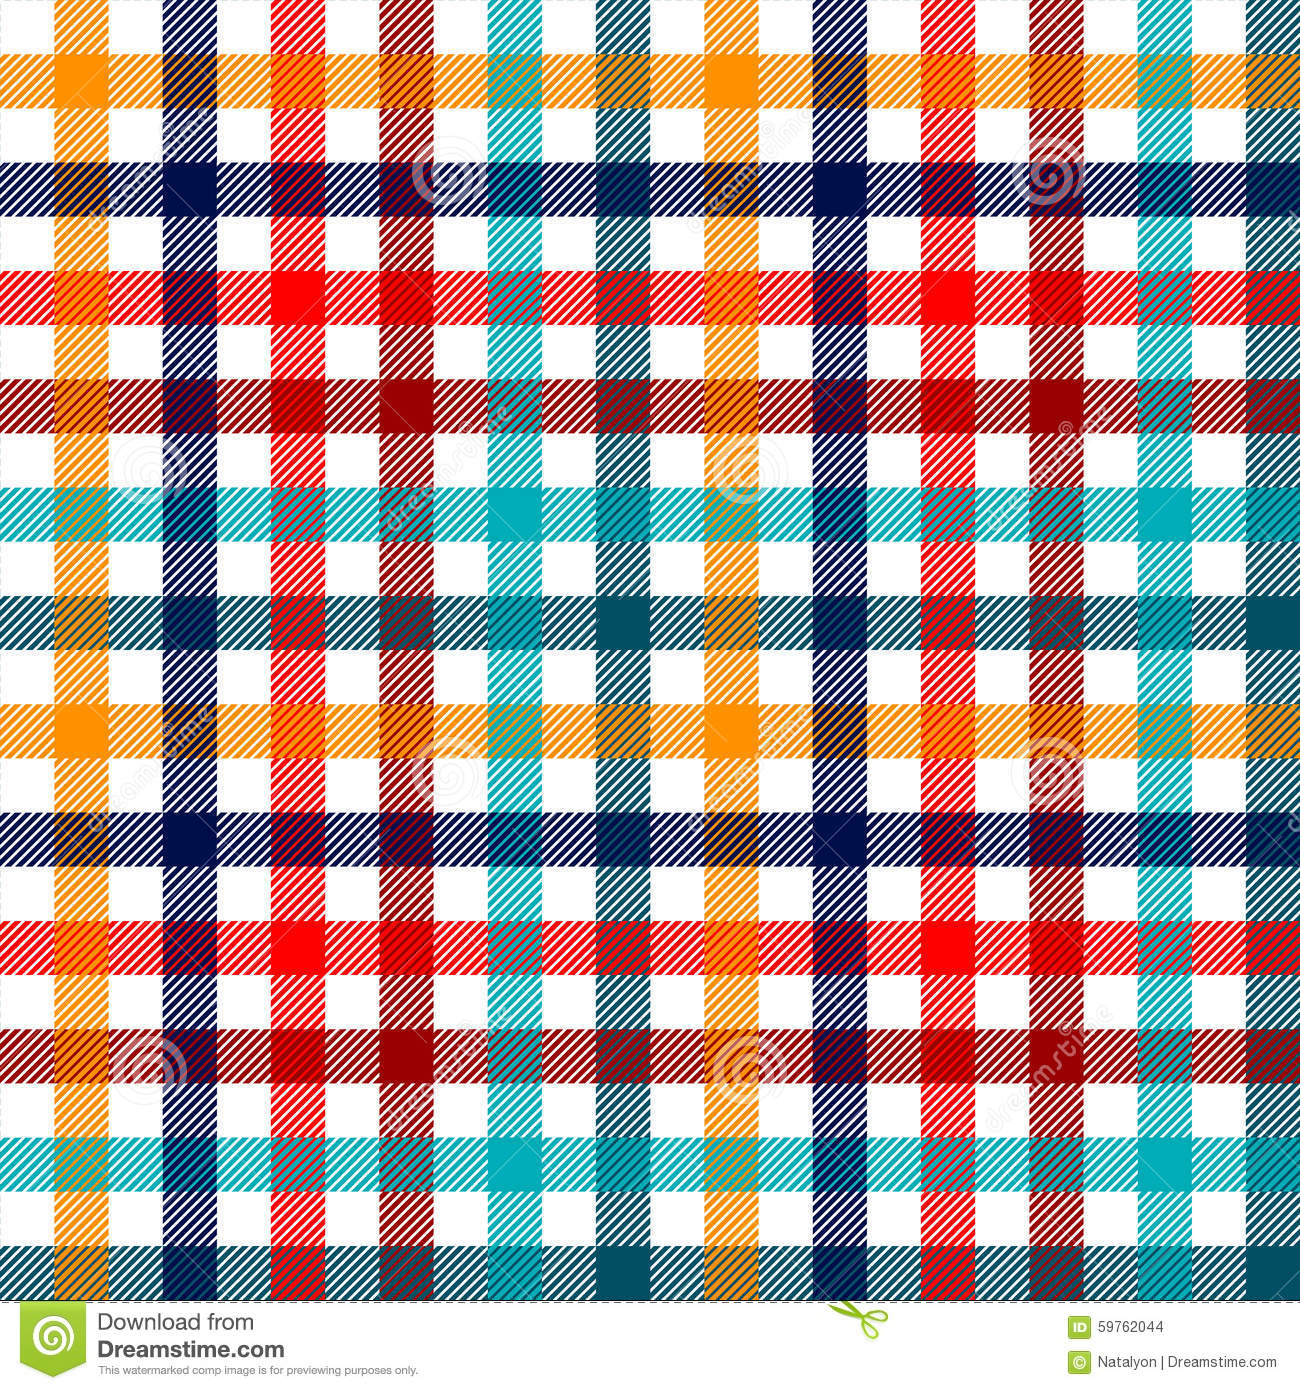 Plaid Bunt Colorful Checkered Gingham Plaid Fabric Seamless Pattern